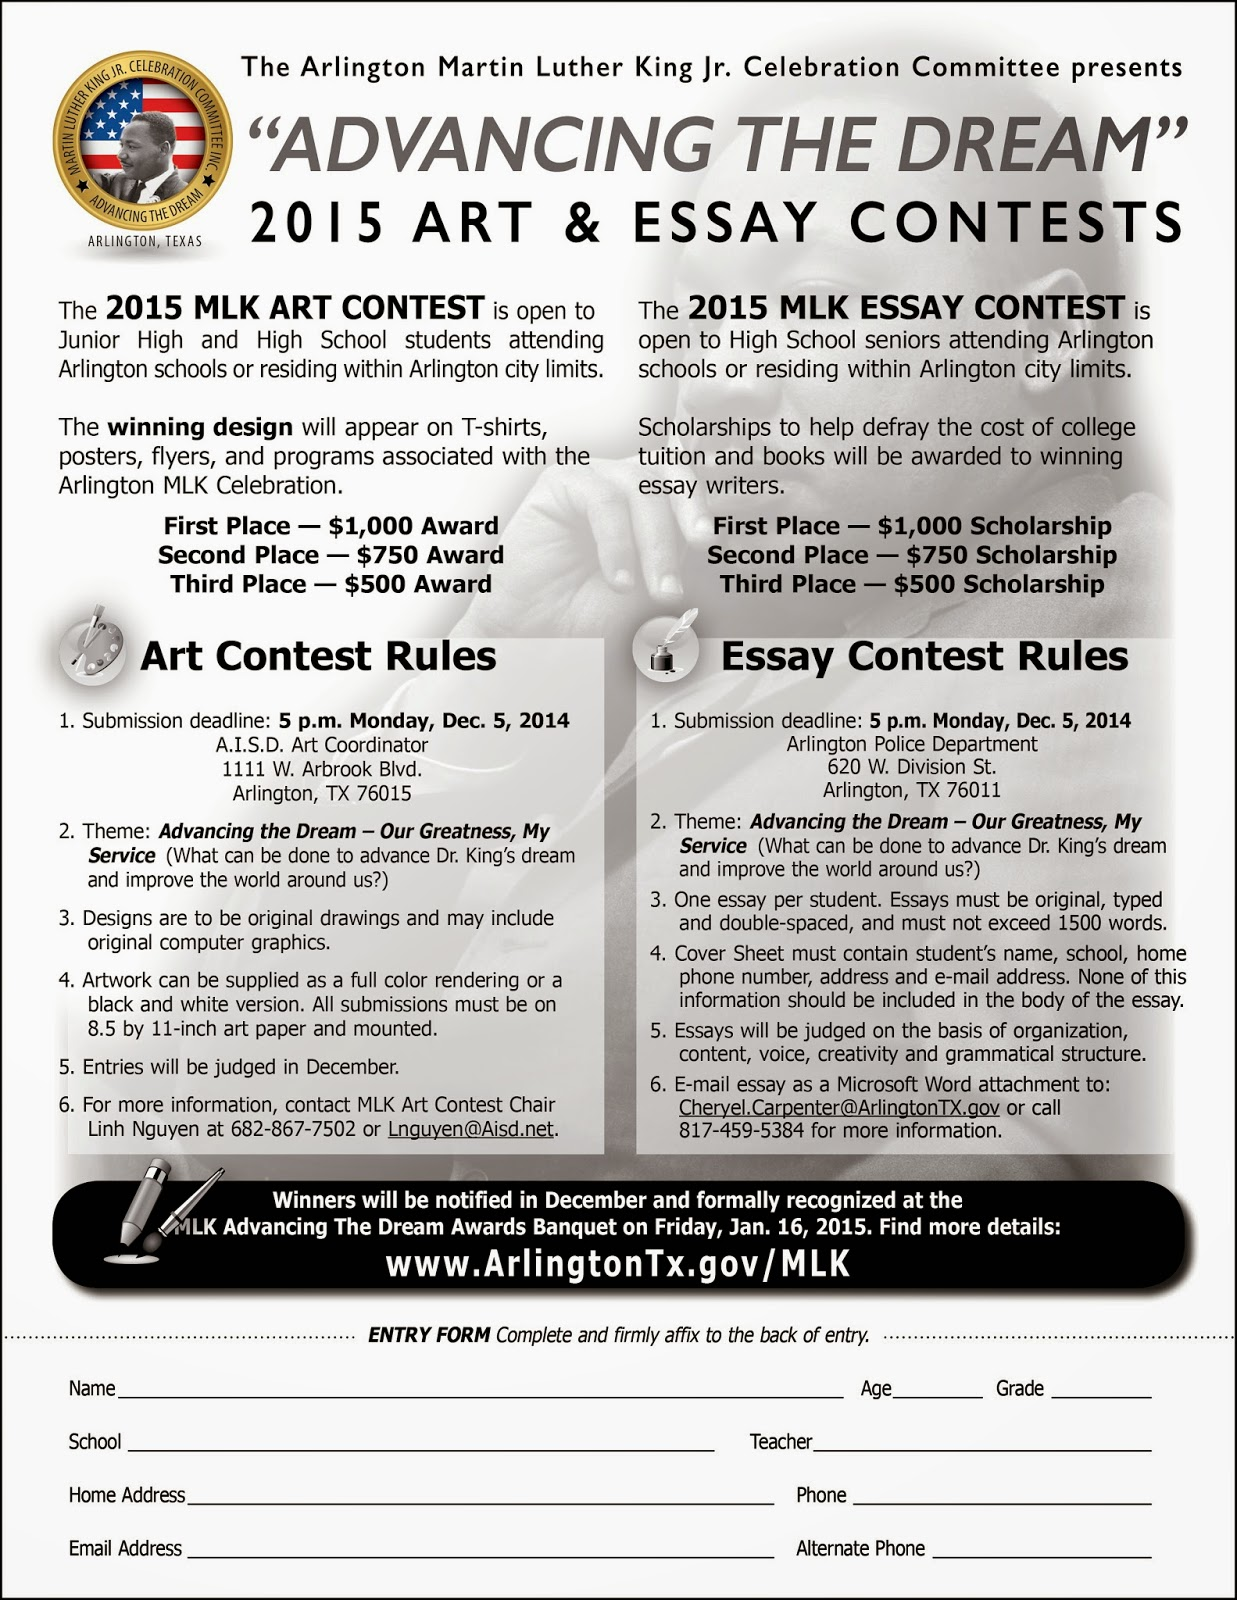 011 Essay Example Art2band2bessay2bcontest2bflyer2b2015 Best Mlk Ideas Intro Contest Winners 2018 Full